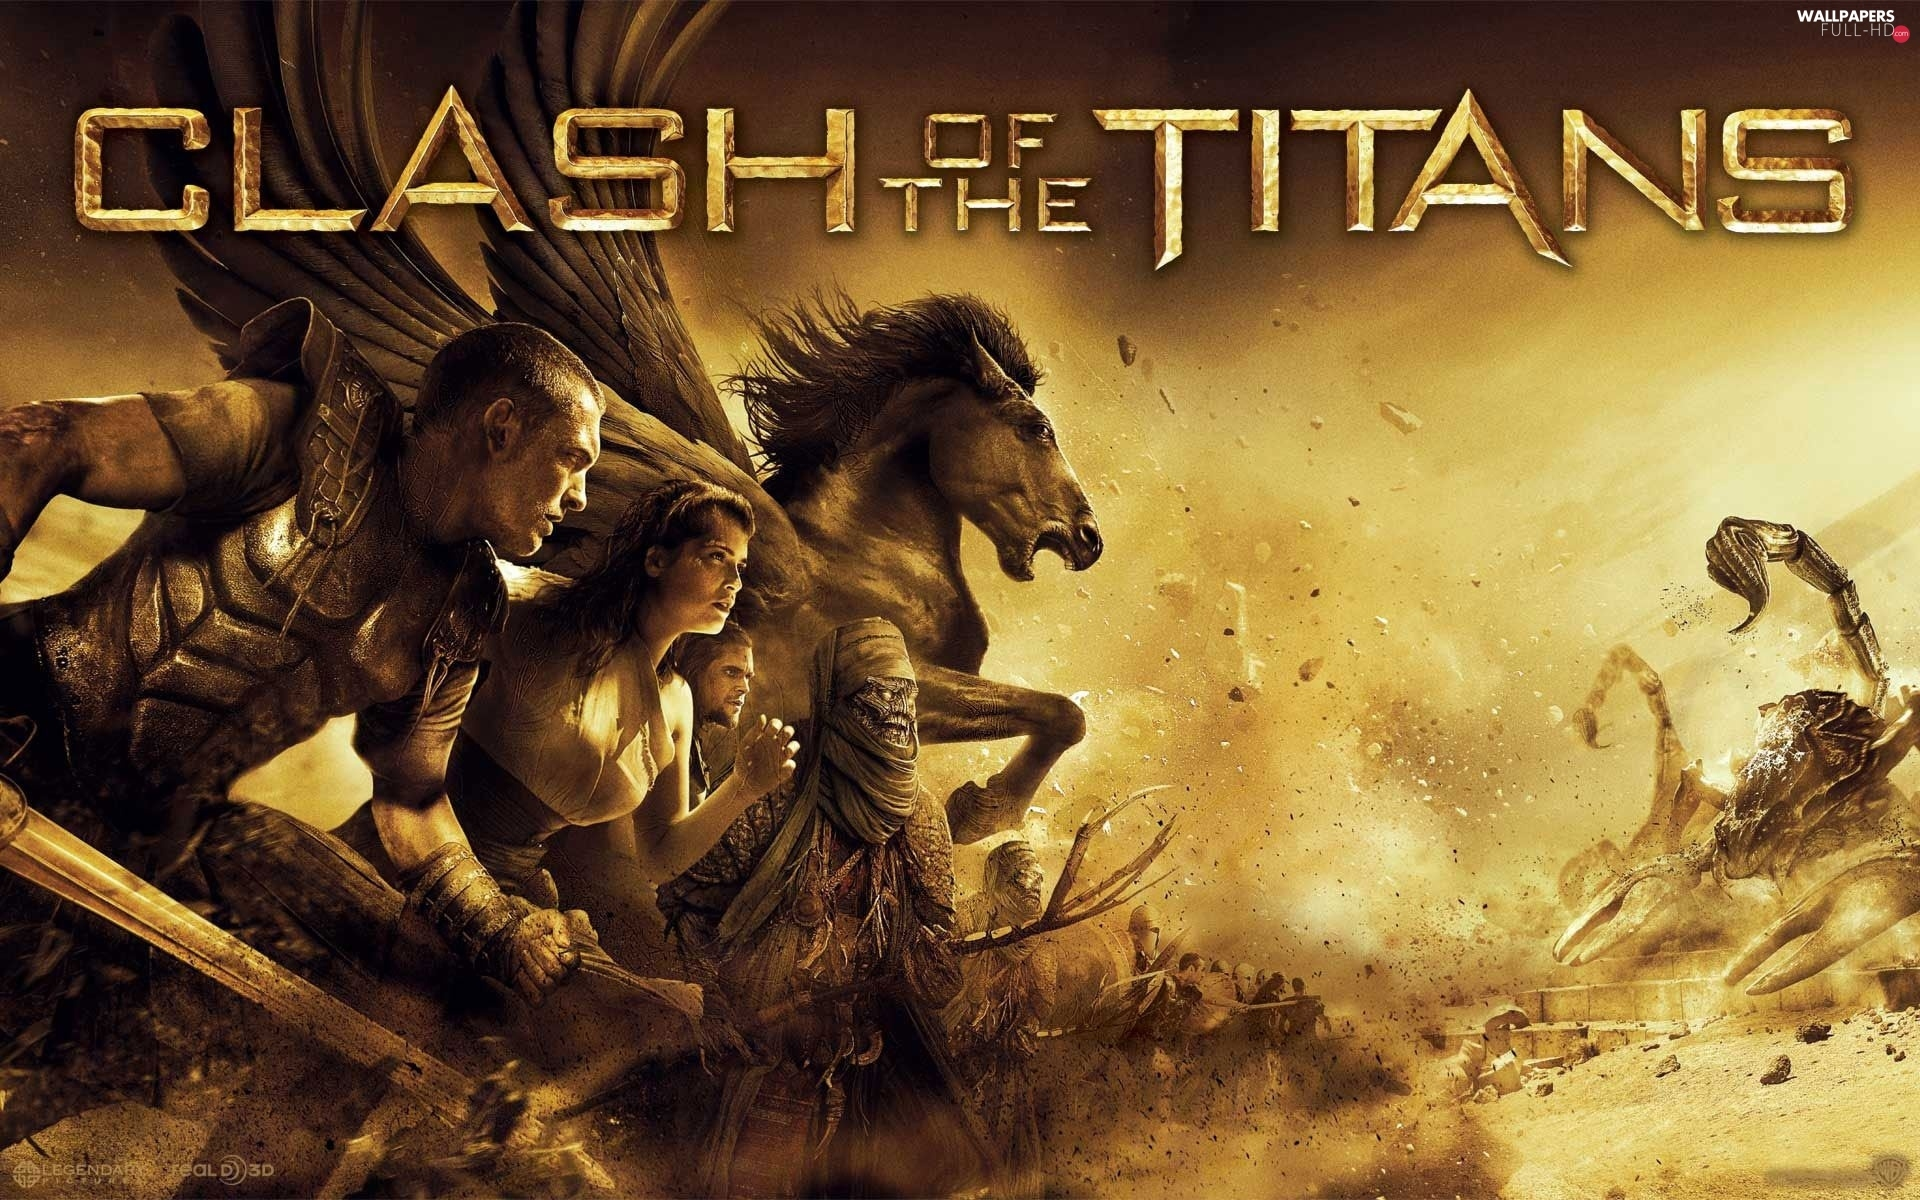 Clash of the Titans, movie